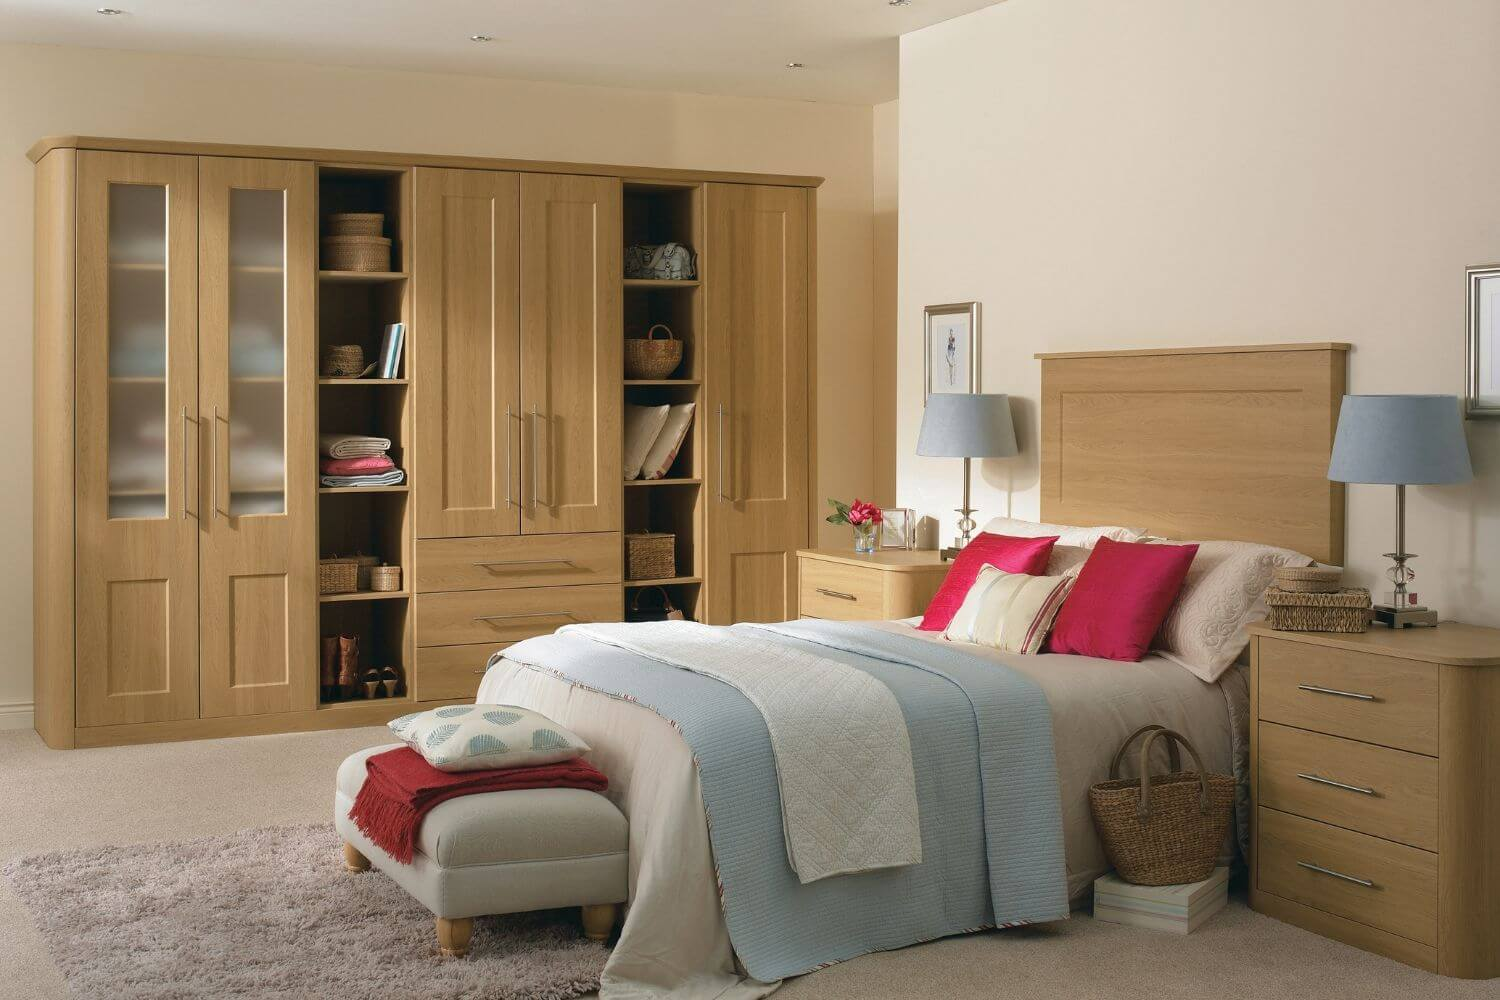 Traditional bedroom with wood finish